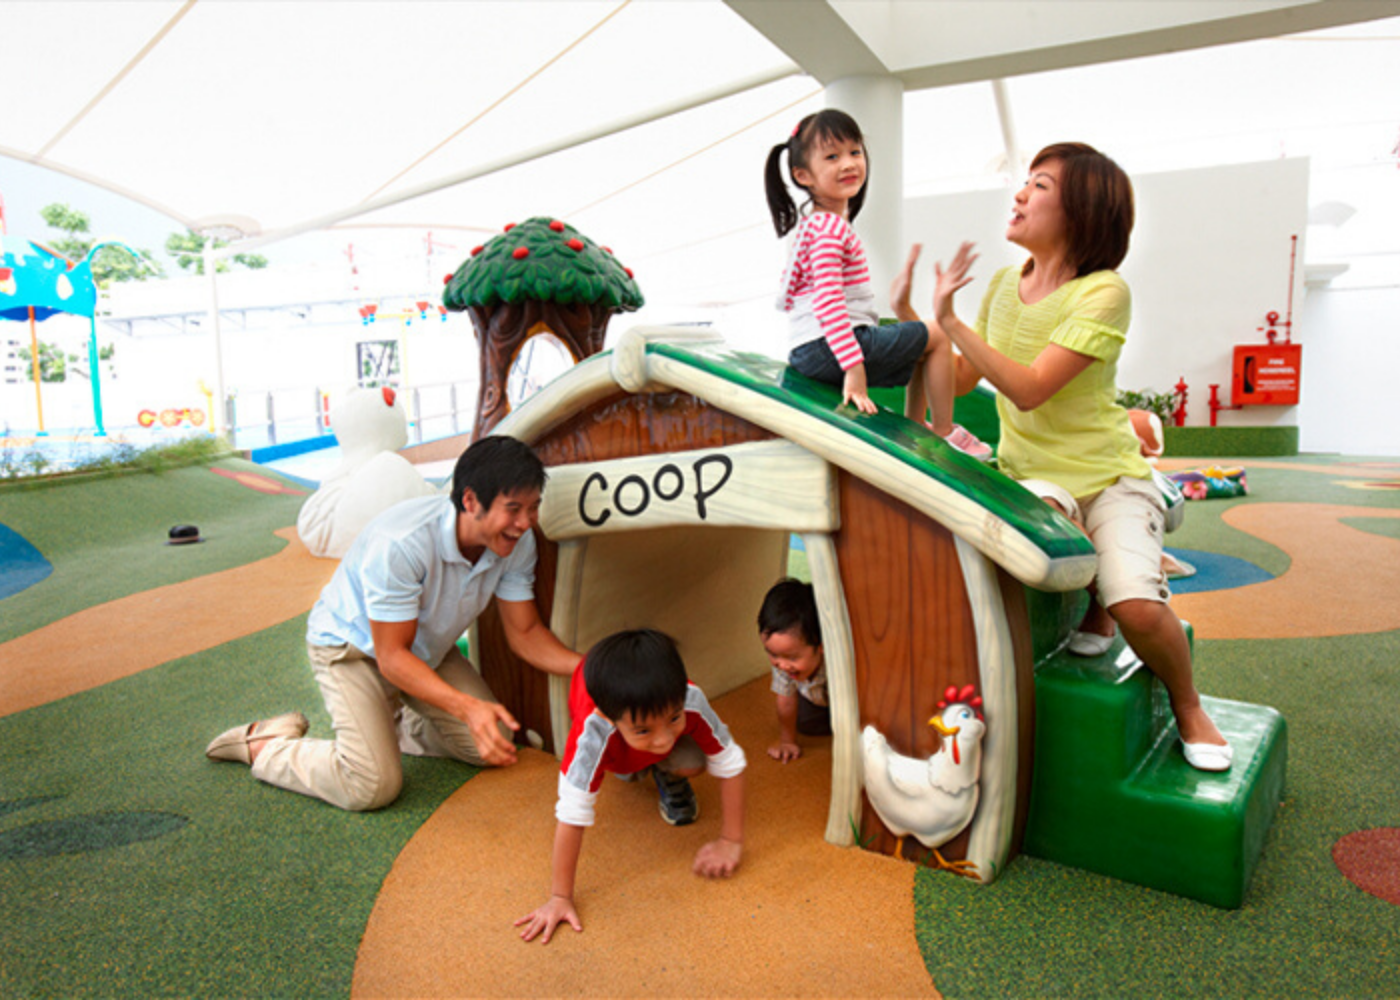 Singapore shopping malls with amazing play areas for kids